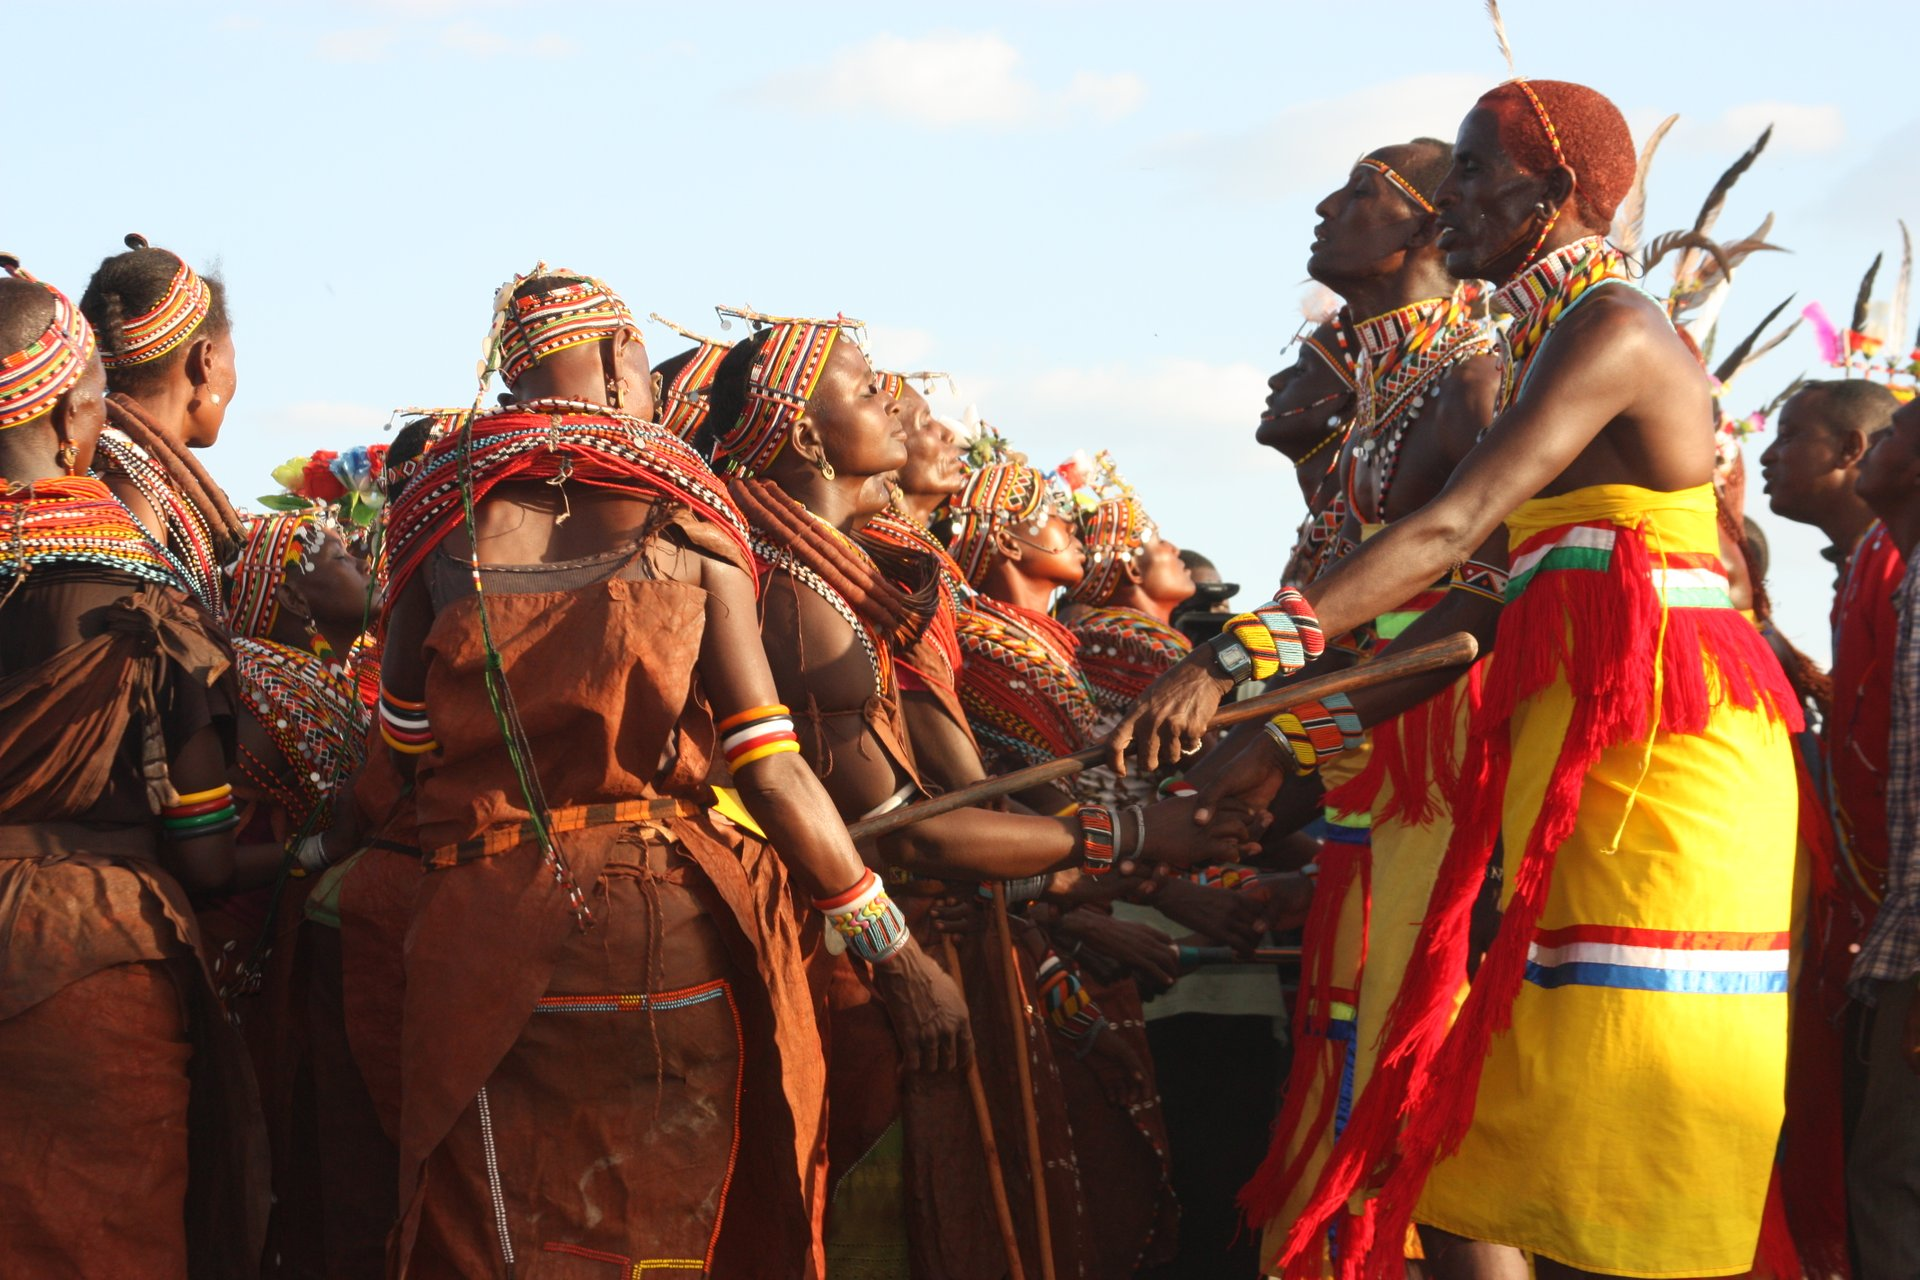 Marsabit Lake Turkana Cultural Festival in Kenya 2019 - Best Time